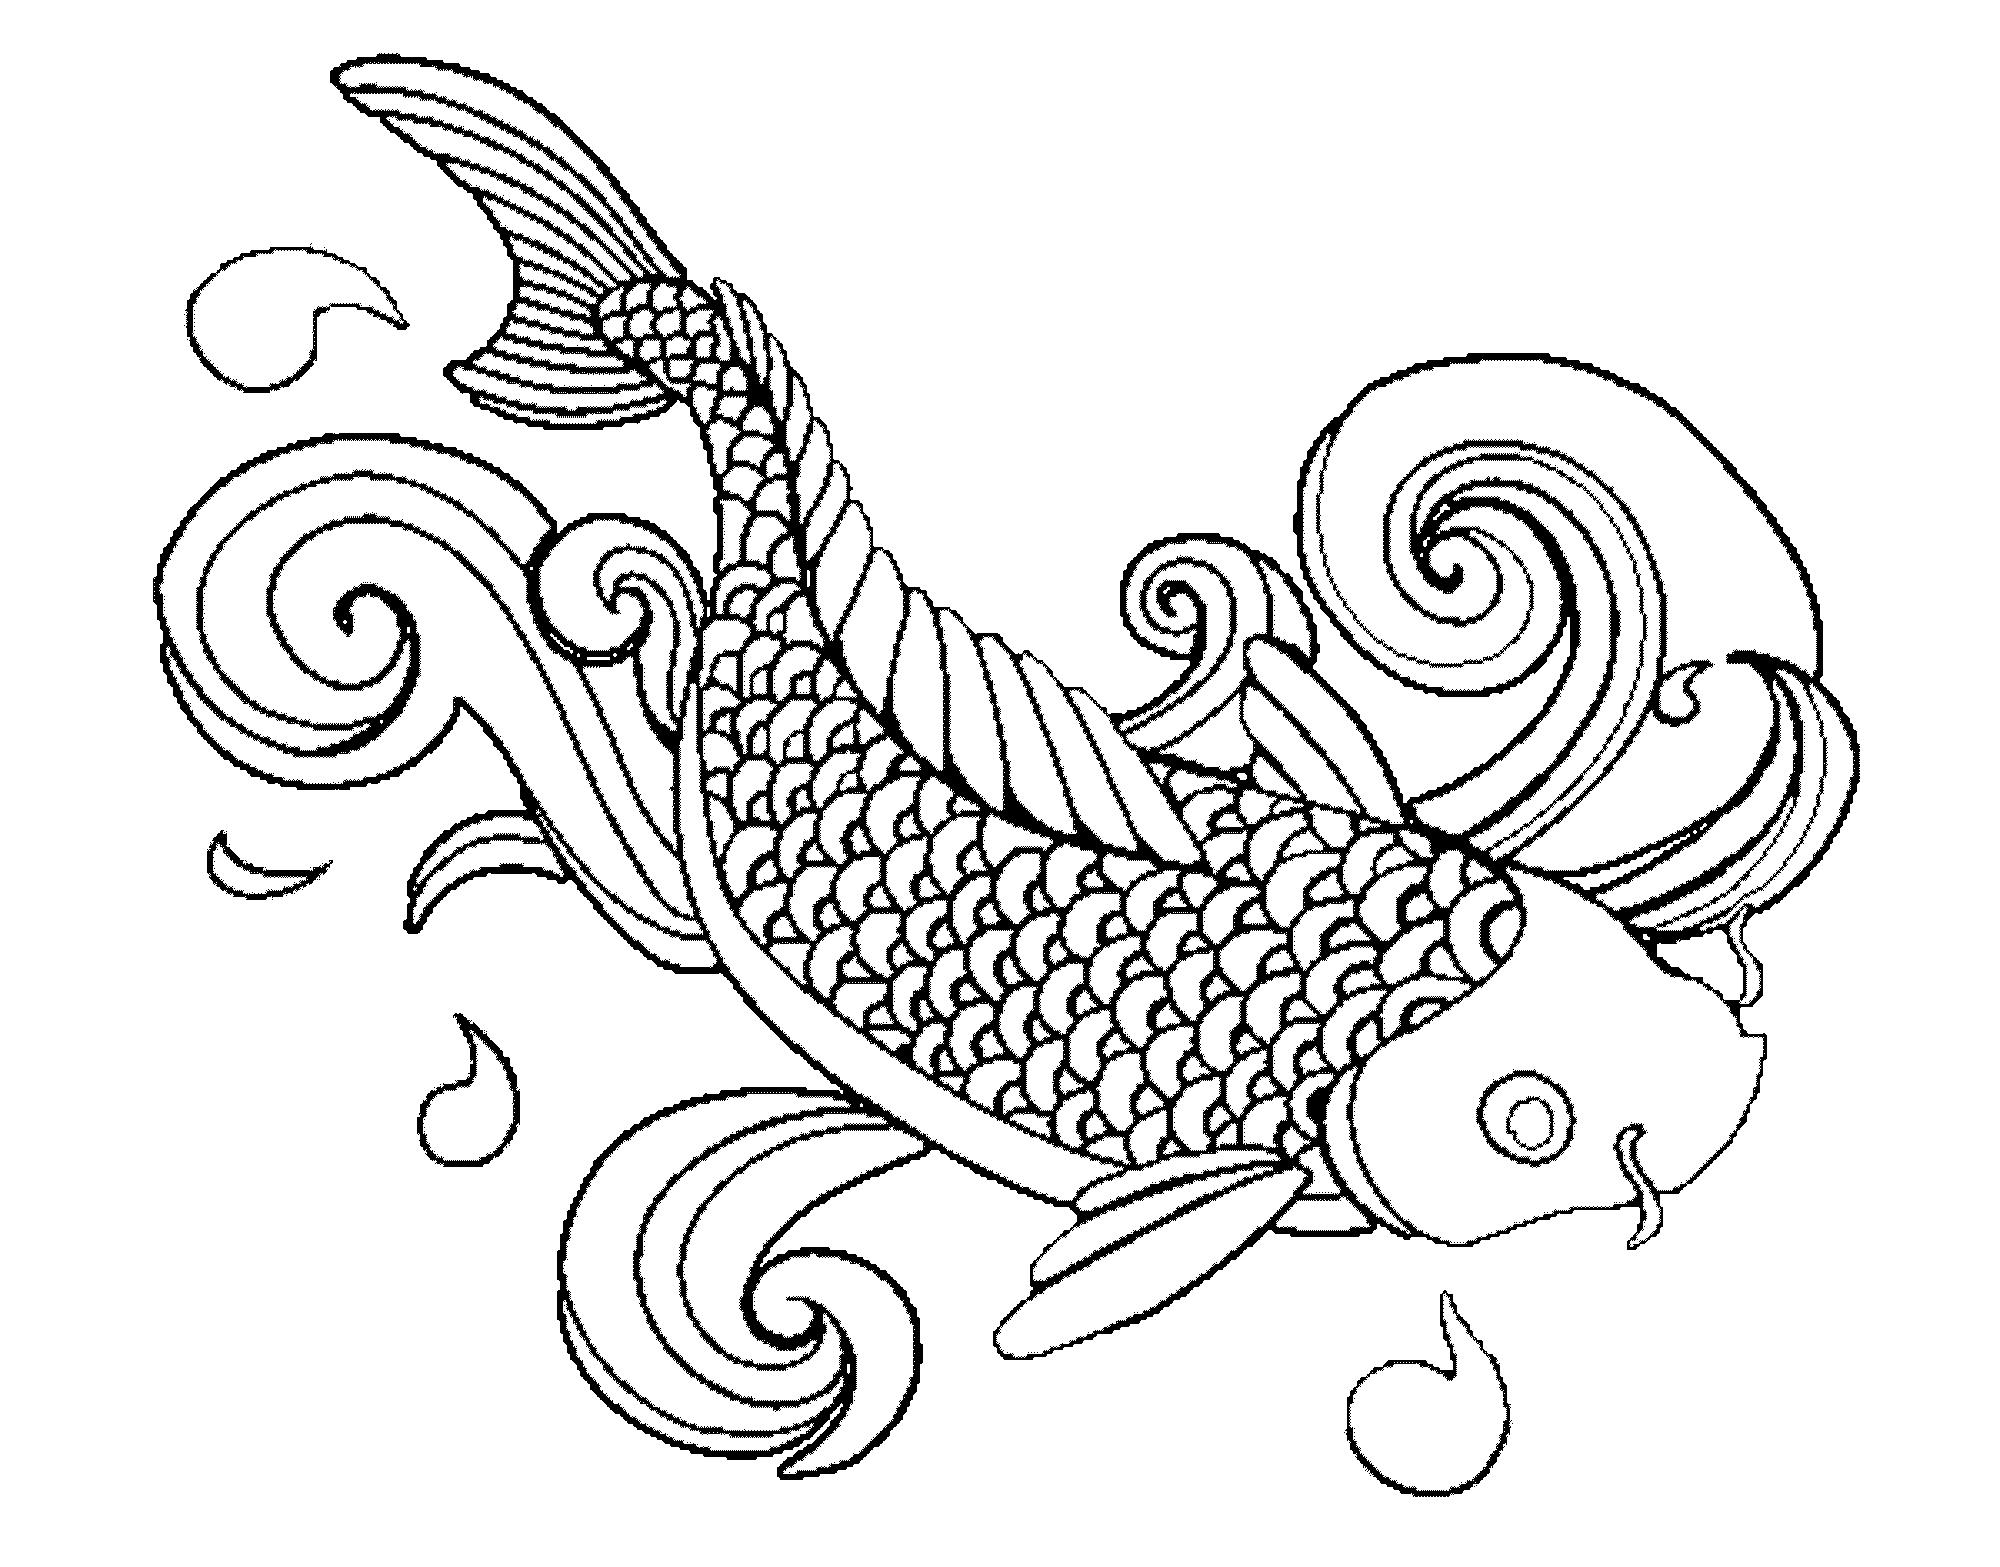 Fish with bubbles clipart black and white jpg royalty free Aquarium Fish Drawing at GetDrawings.com | Free for personal use ... jpg royalty free